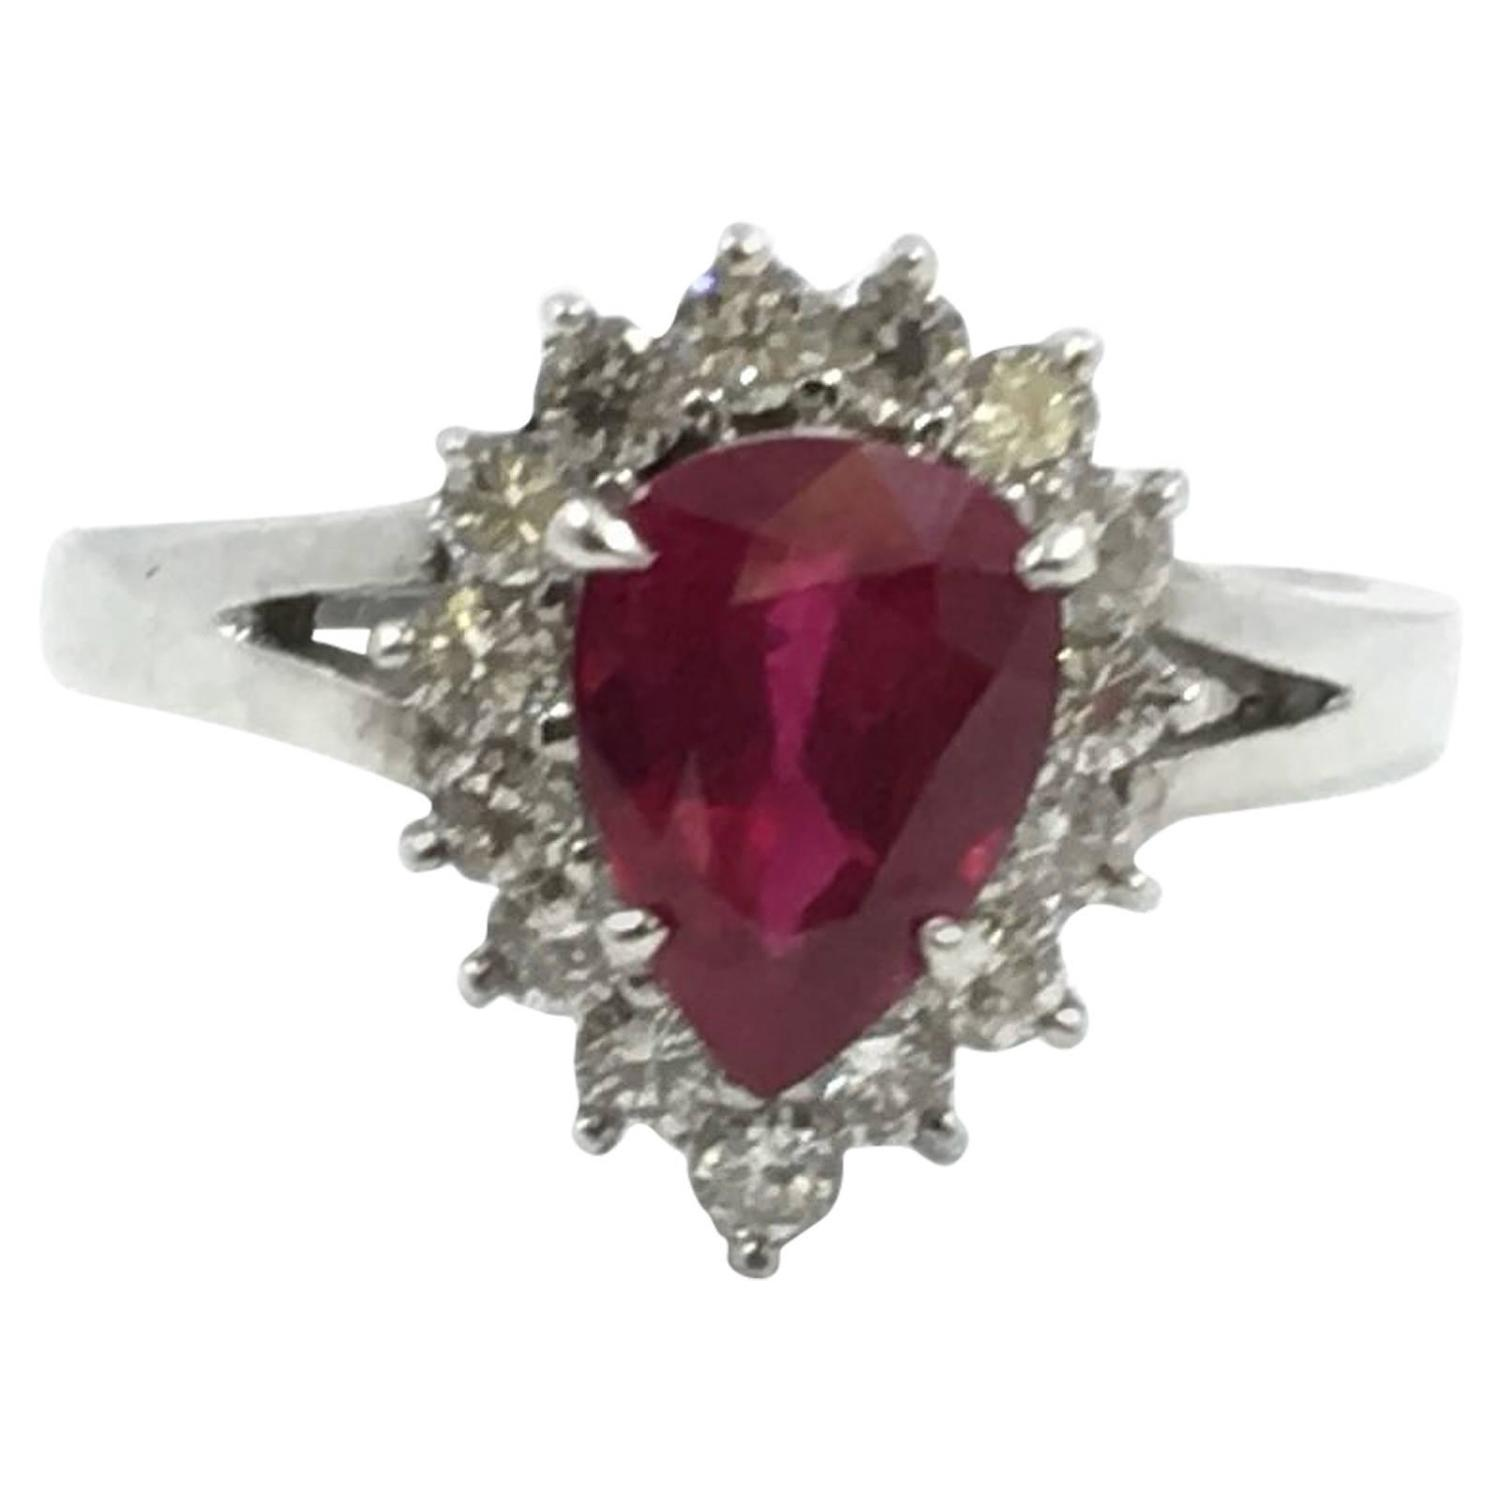 2 5 Carat Pear Shape Natural Ruby Diamond Ring For Sale at 1stdibs